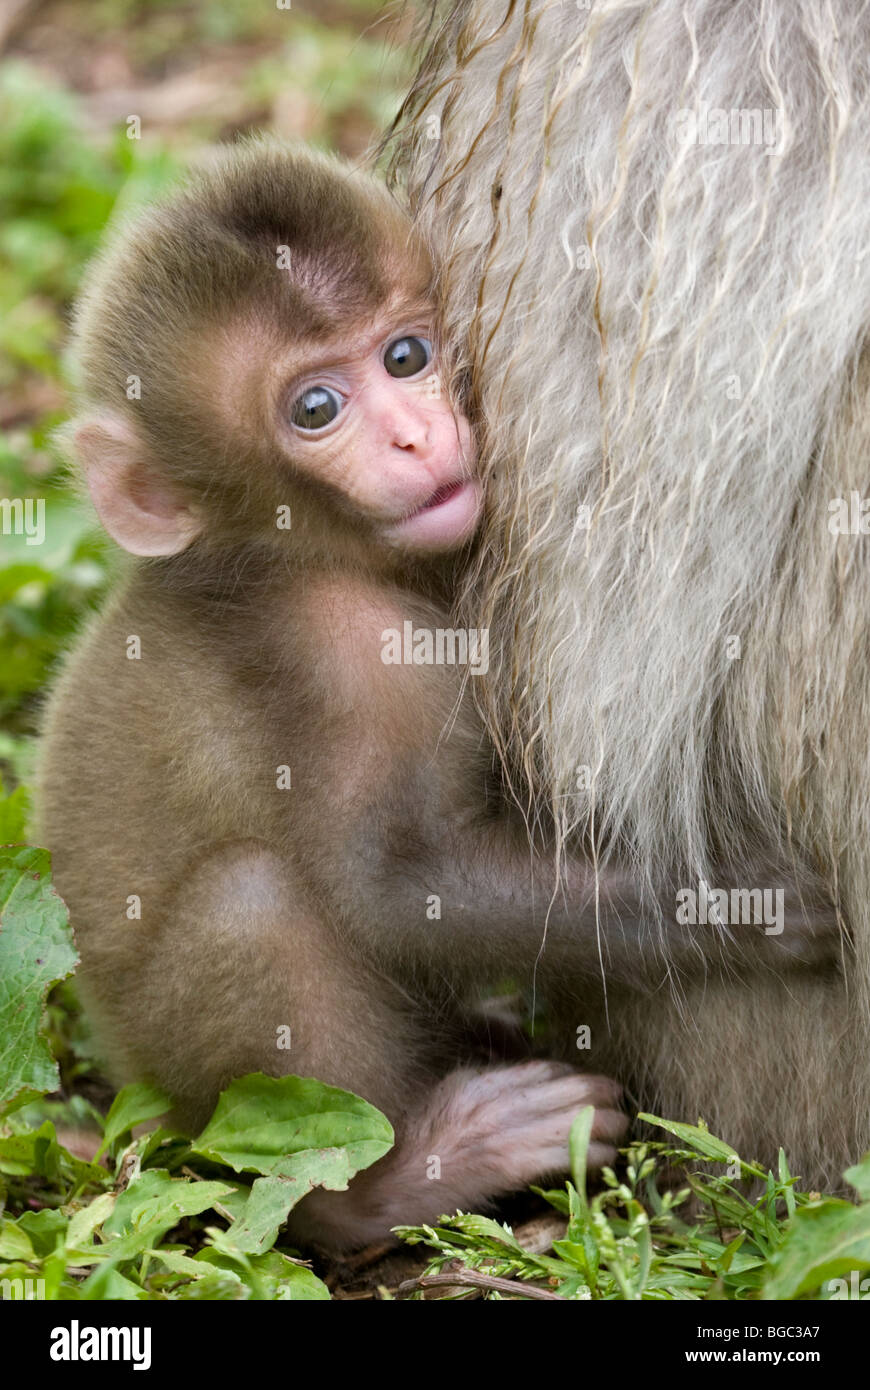 Japanese Macaque baby clinging to mother's fur (Macaca fuscata) - Stock Image